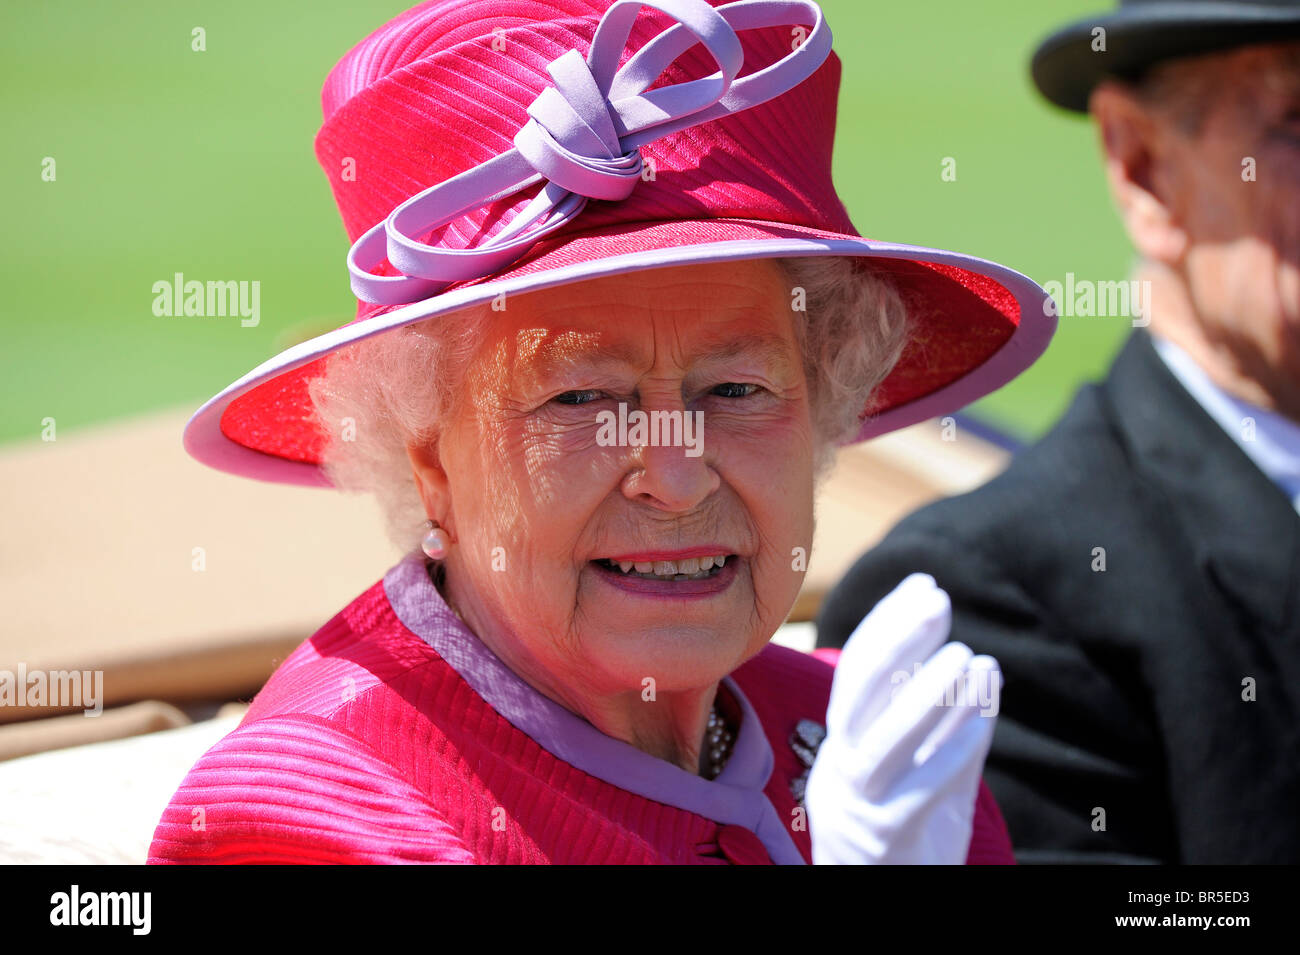 HRH Queen Elizabeth II in the royal procession in the parade ring during day two of Royal Ascot 2010 - Stock Image